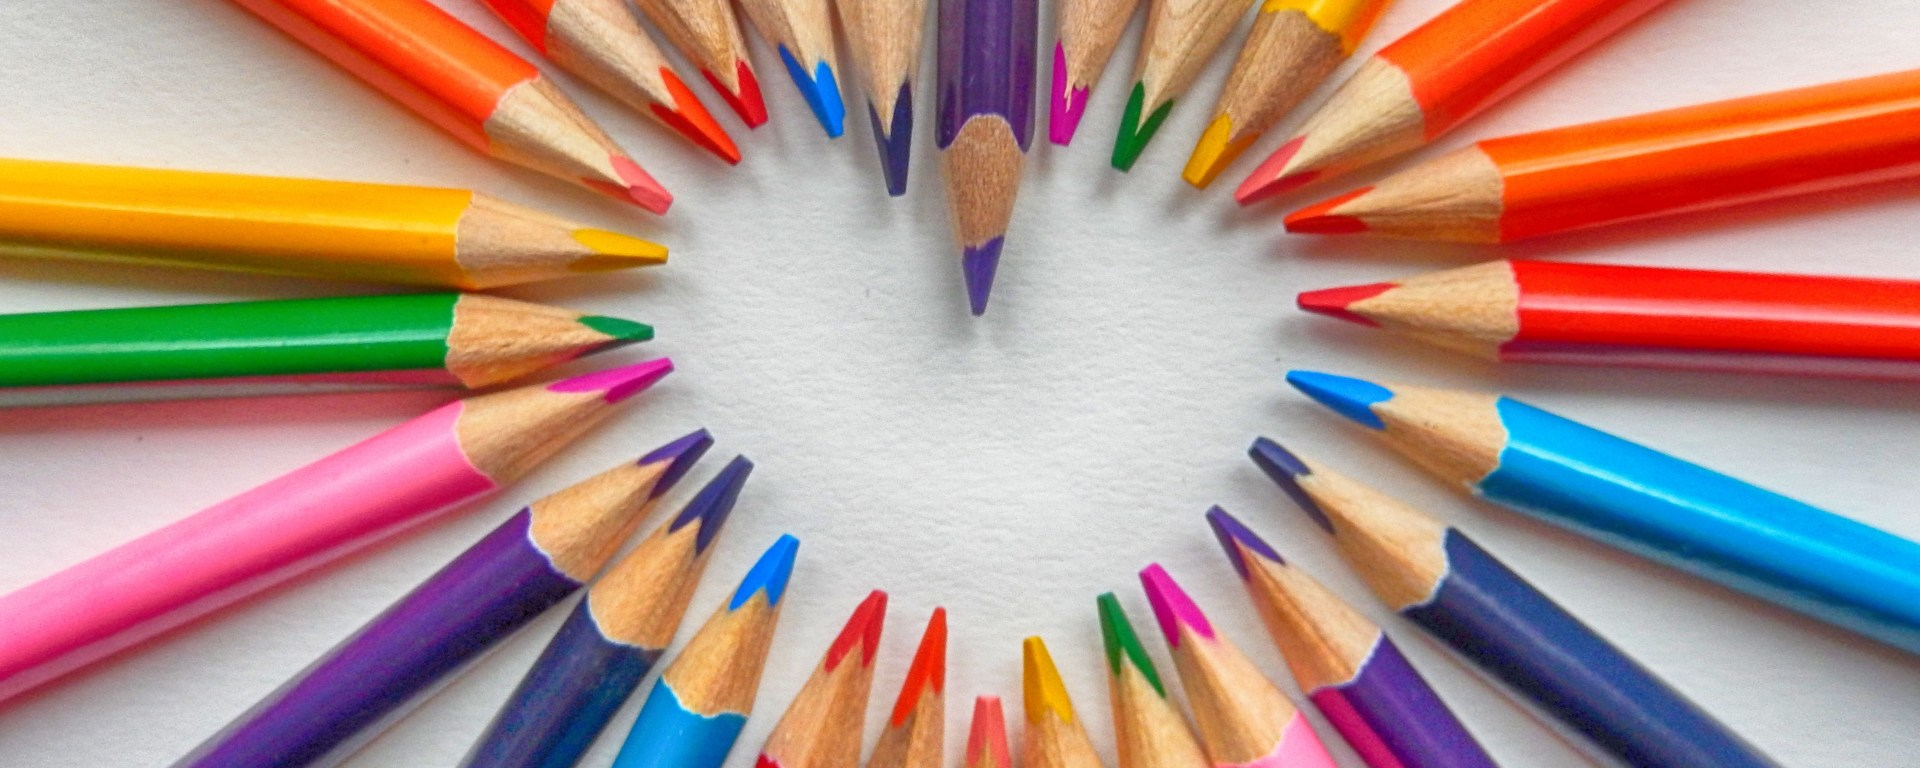 coloring pencils forming a heart